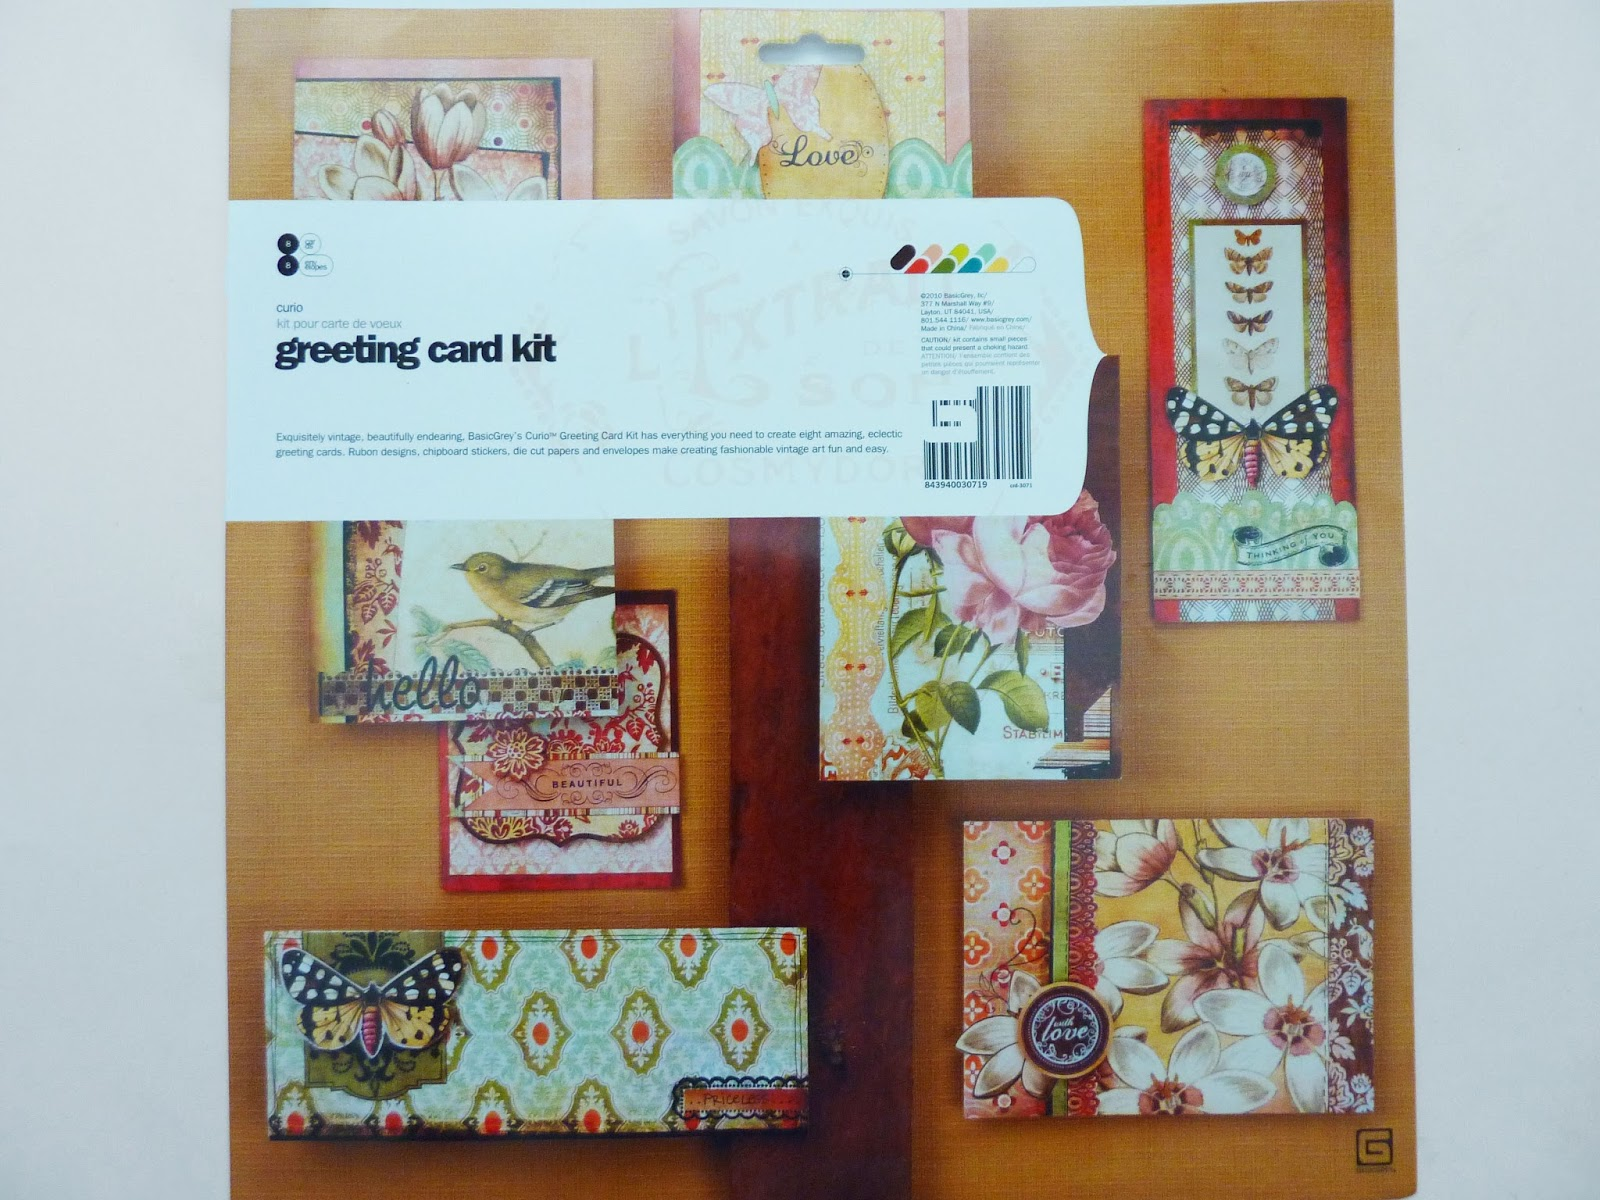 Artful play altered basic grey greeting card kit the kits gives you step by step instructions and supplies to make the cards pictured on the cover the kit makes 8 different cards and includes envelopes m4hsunfo